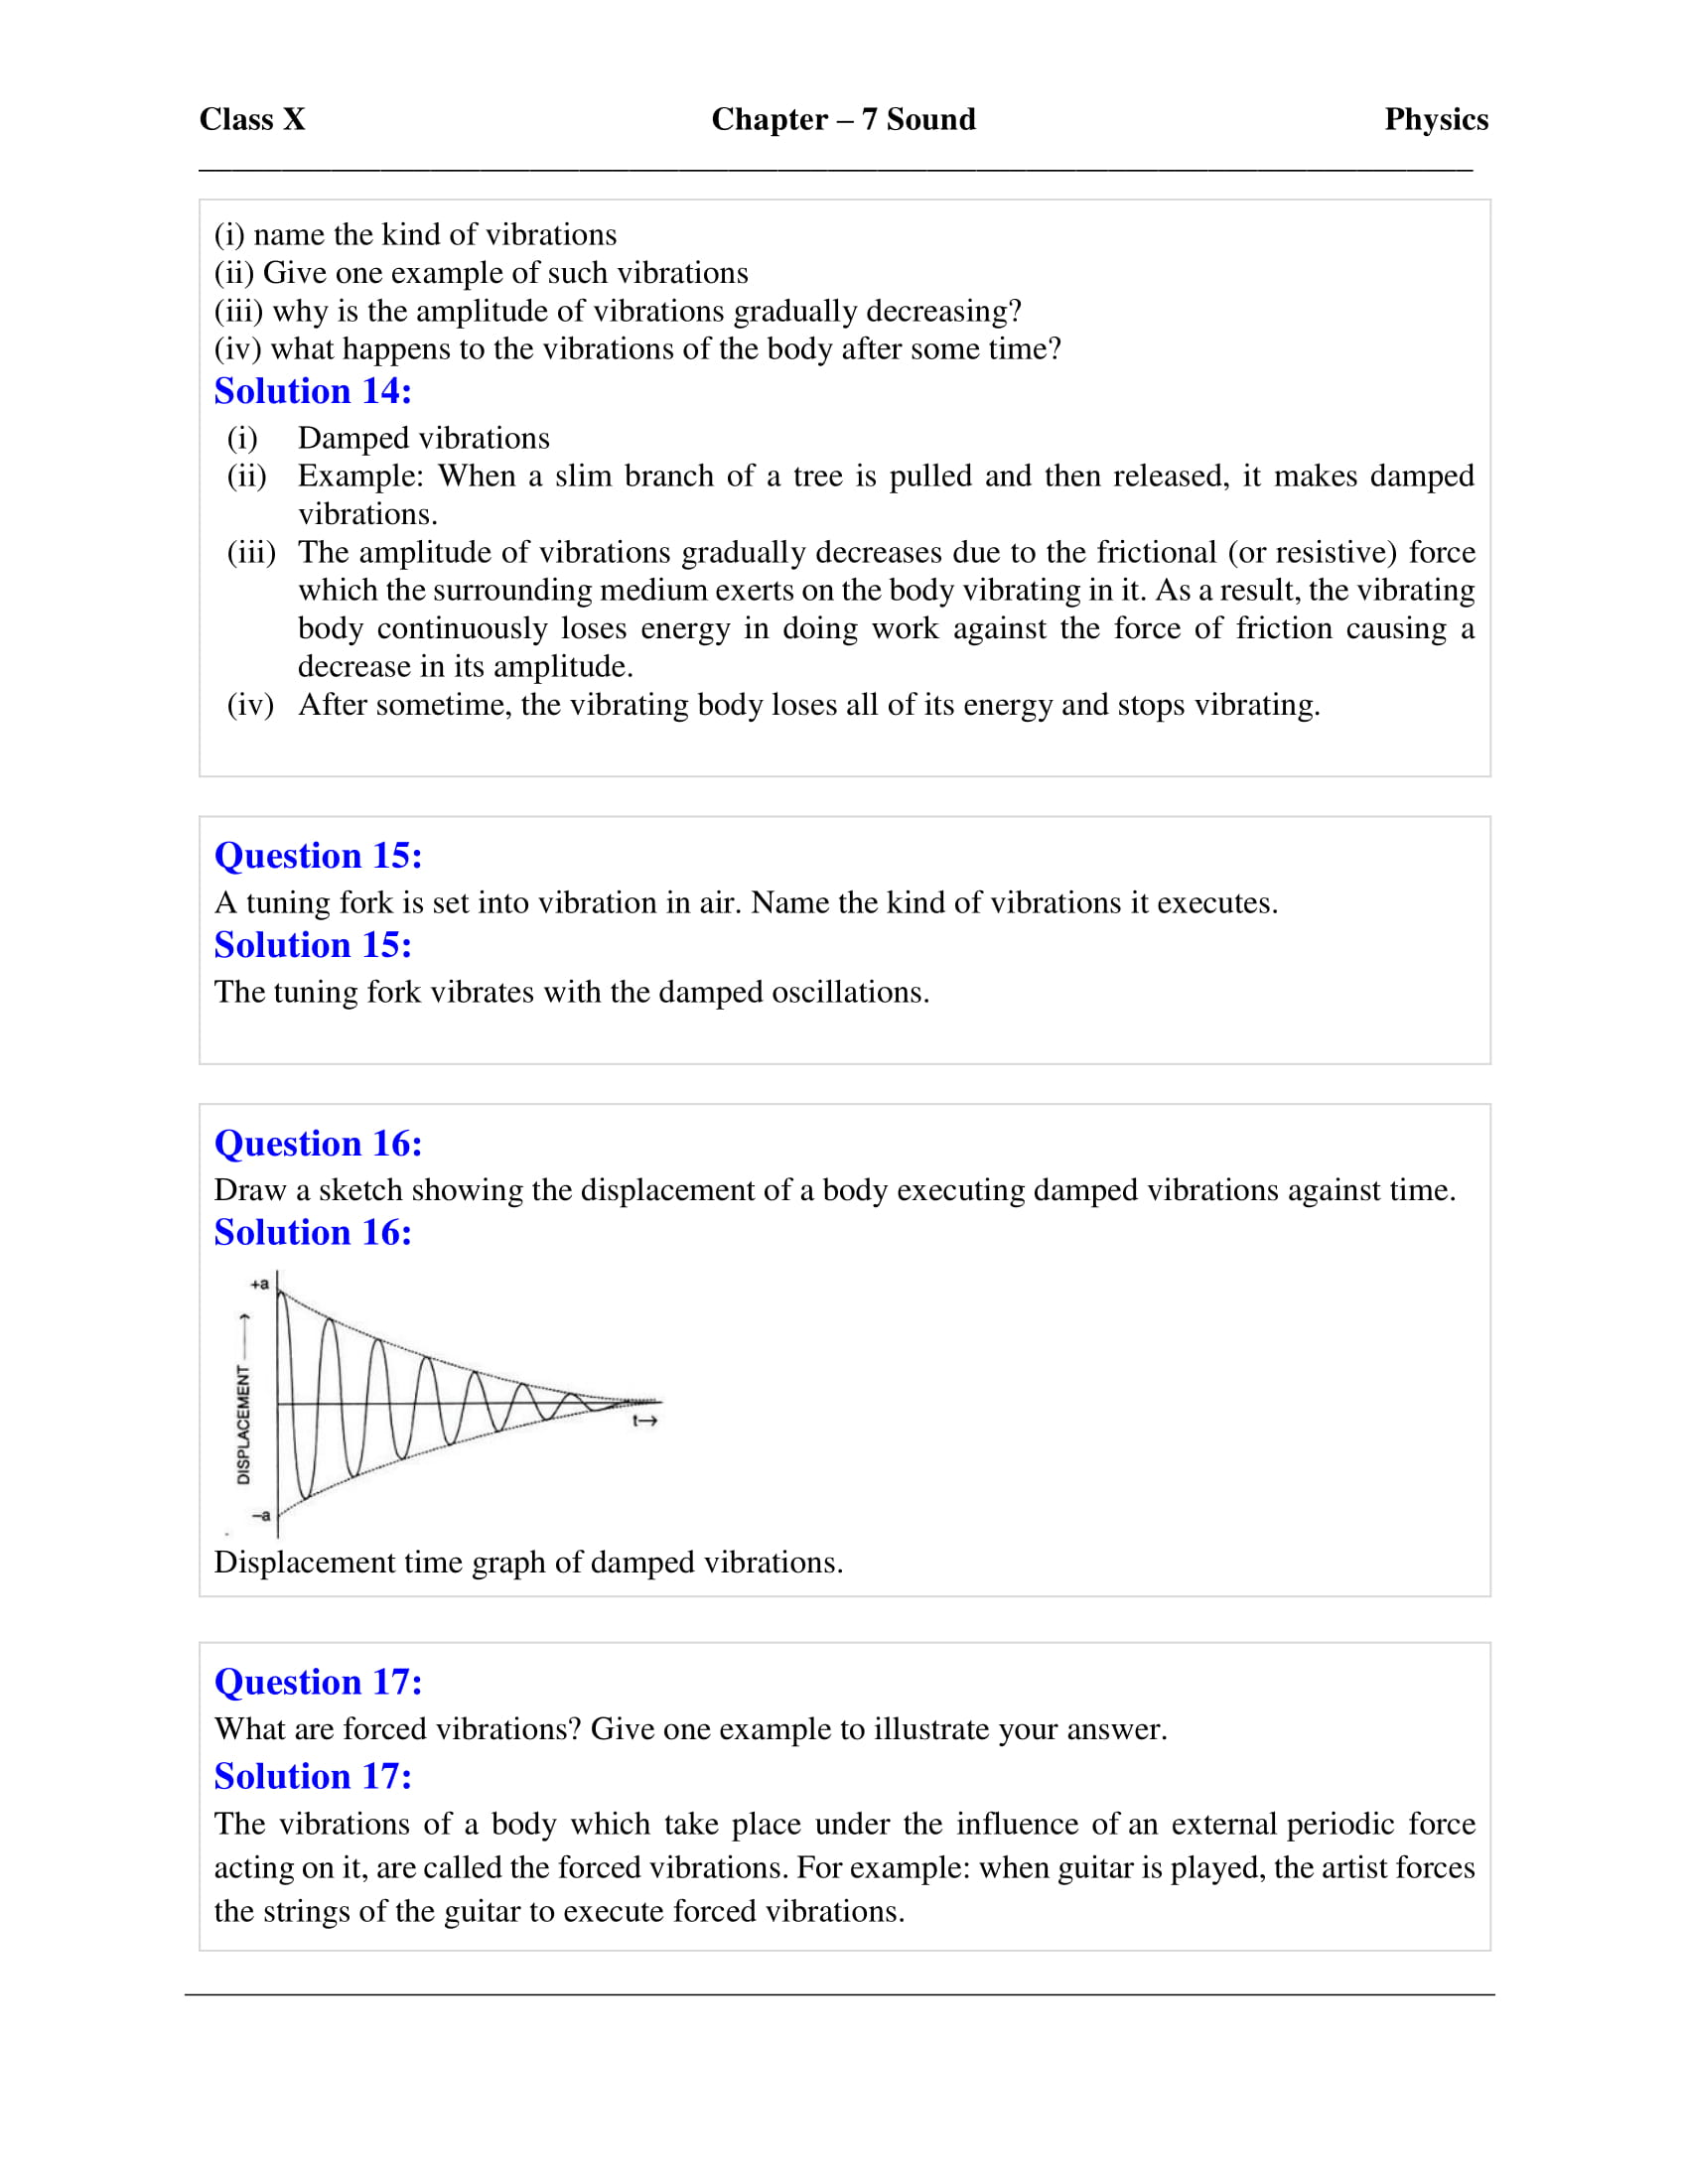 icse-selina-physics-solutions-class-10-chapter-7-sound-12